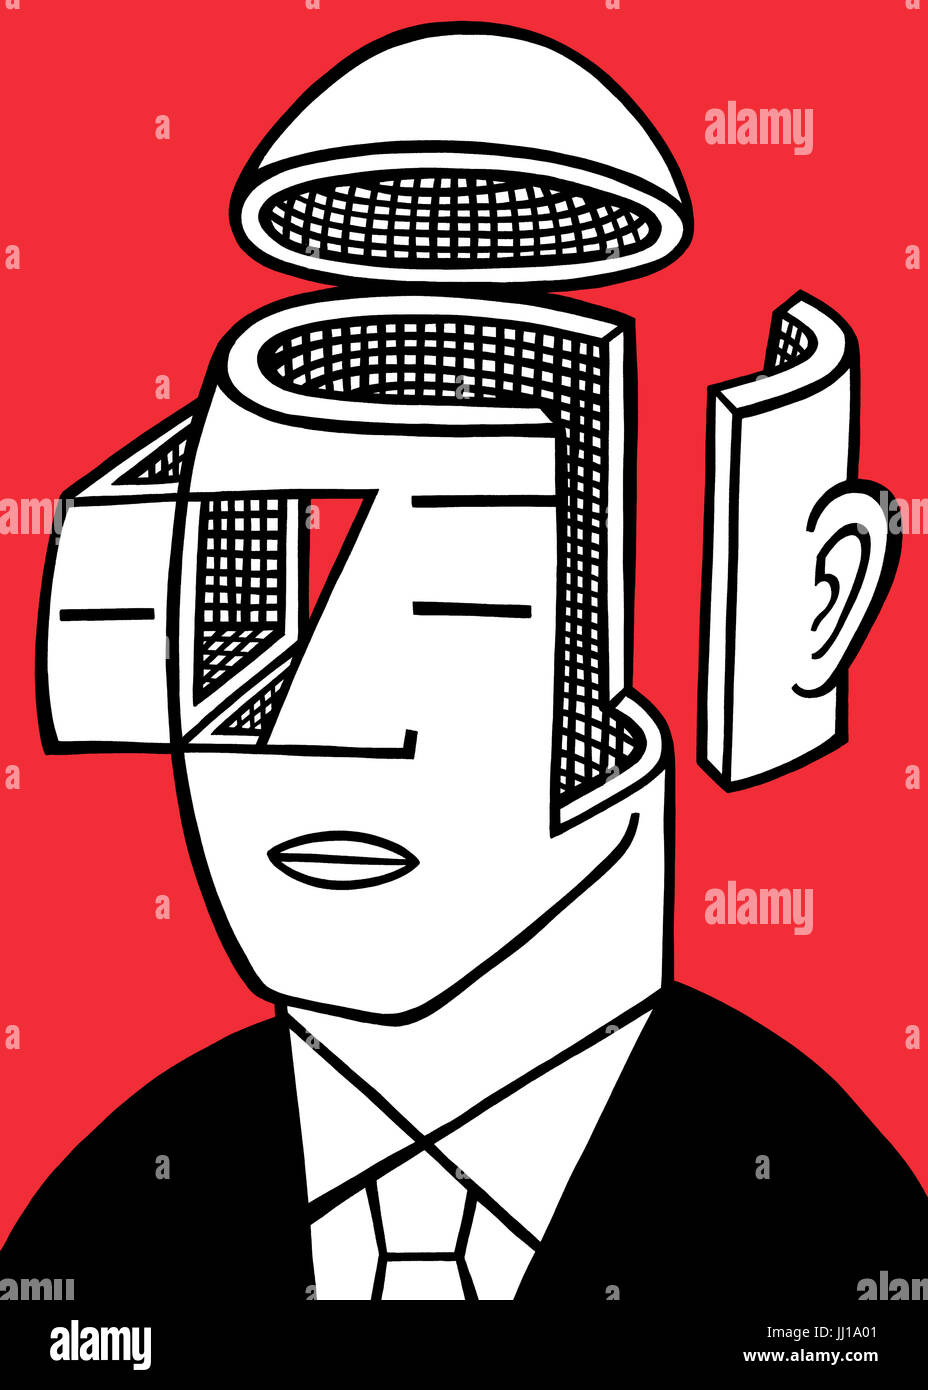 Heads are for thinking. A graphic illustrationStock Photo